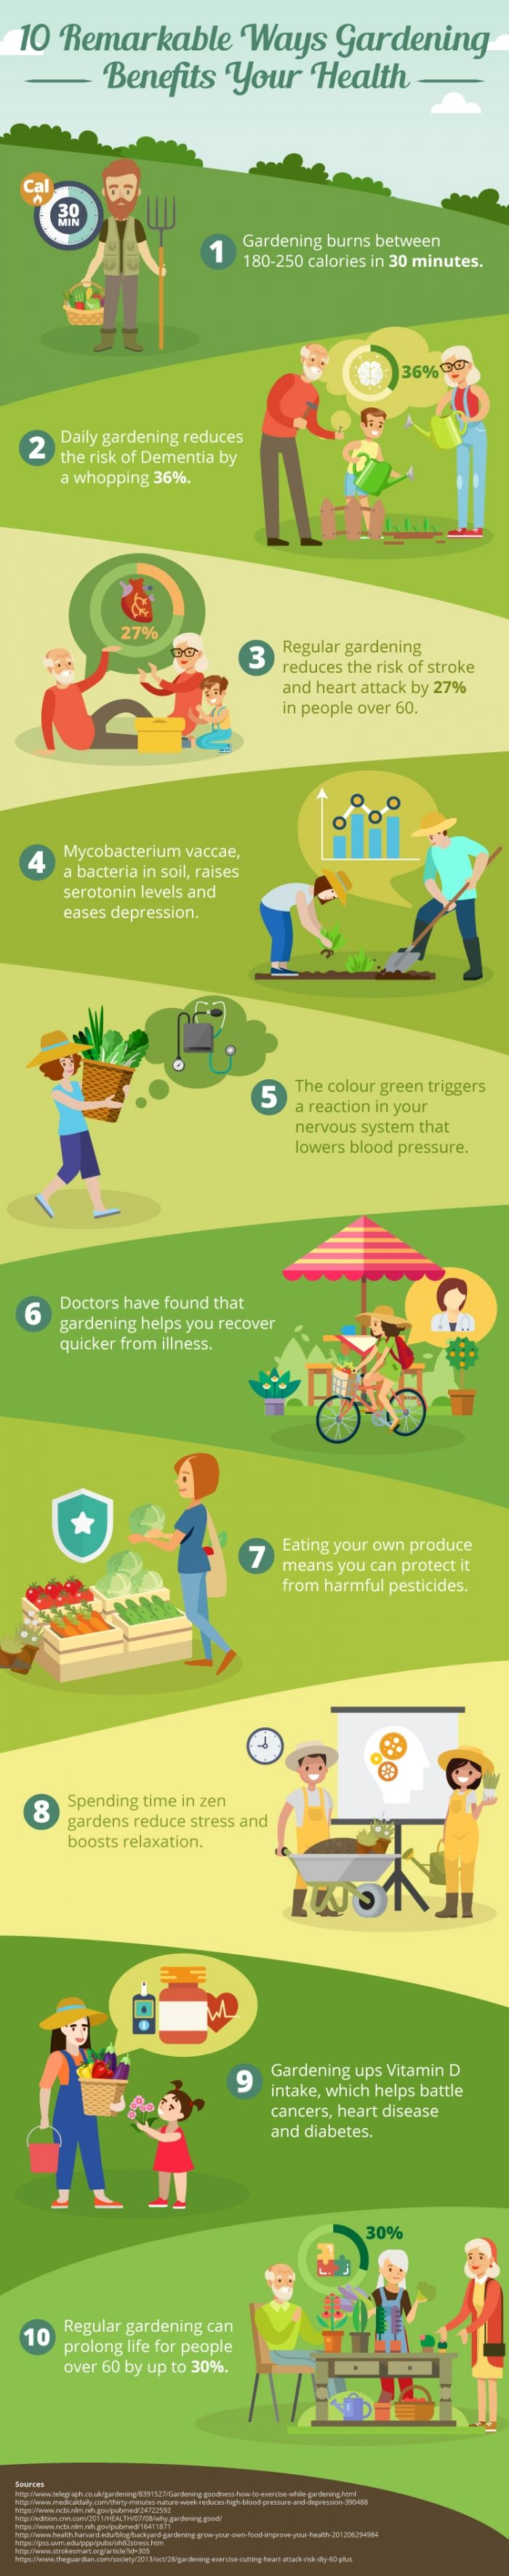 Vegetable garden plans for beginners ayanahouse - 10 Remarkable Ways Gardening Benefits Your Health Infographic